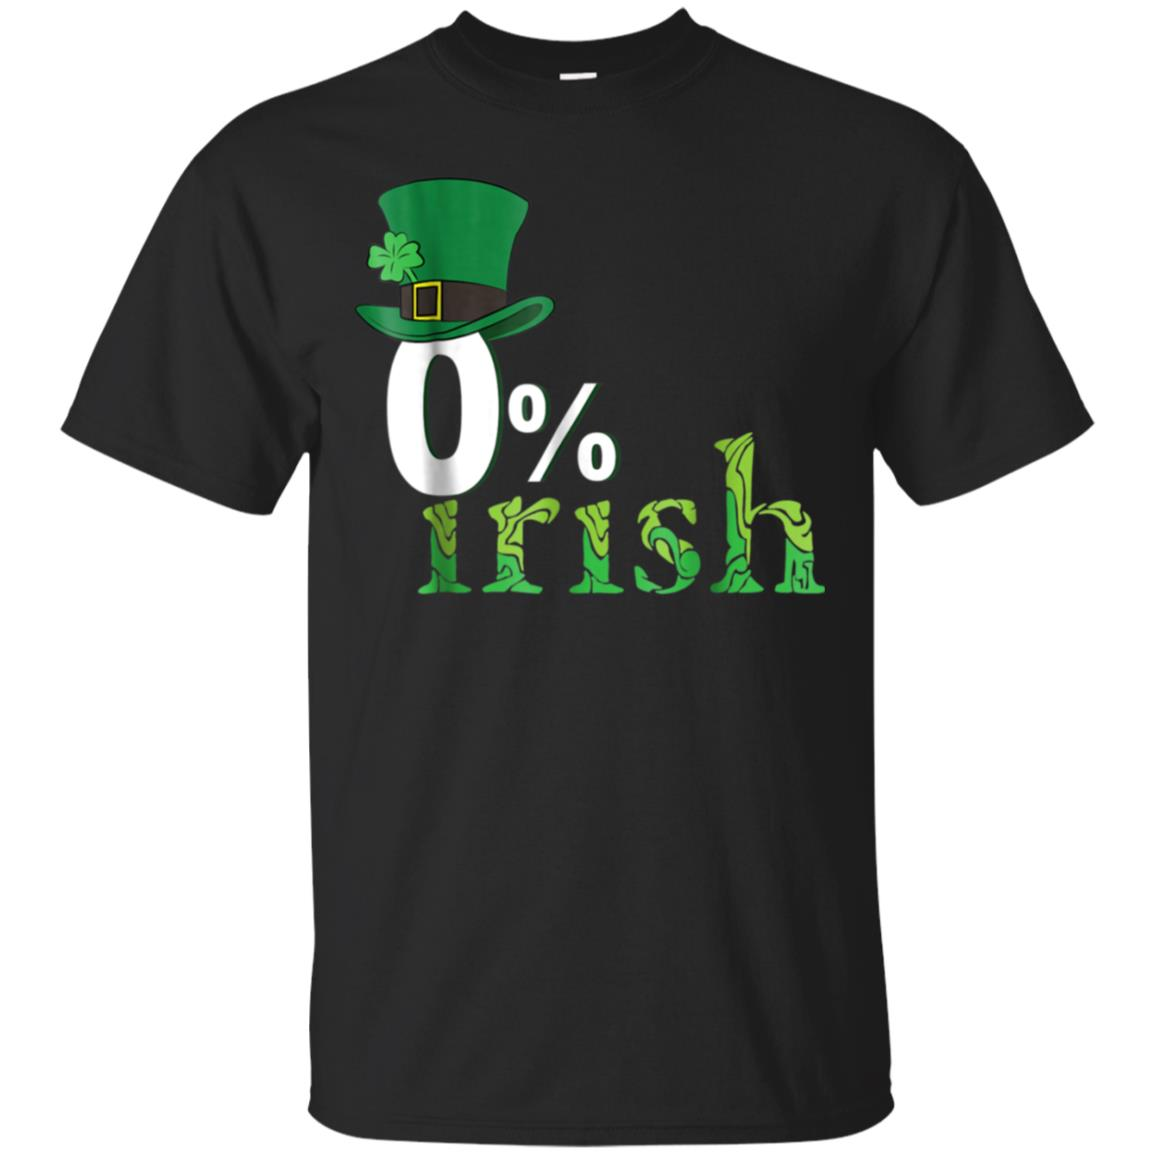 0% Irish T-shirt Funny Clover St.Patrick's Day Gift Idea 99promocode